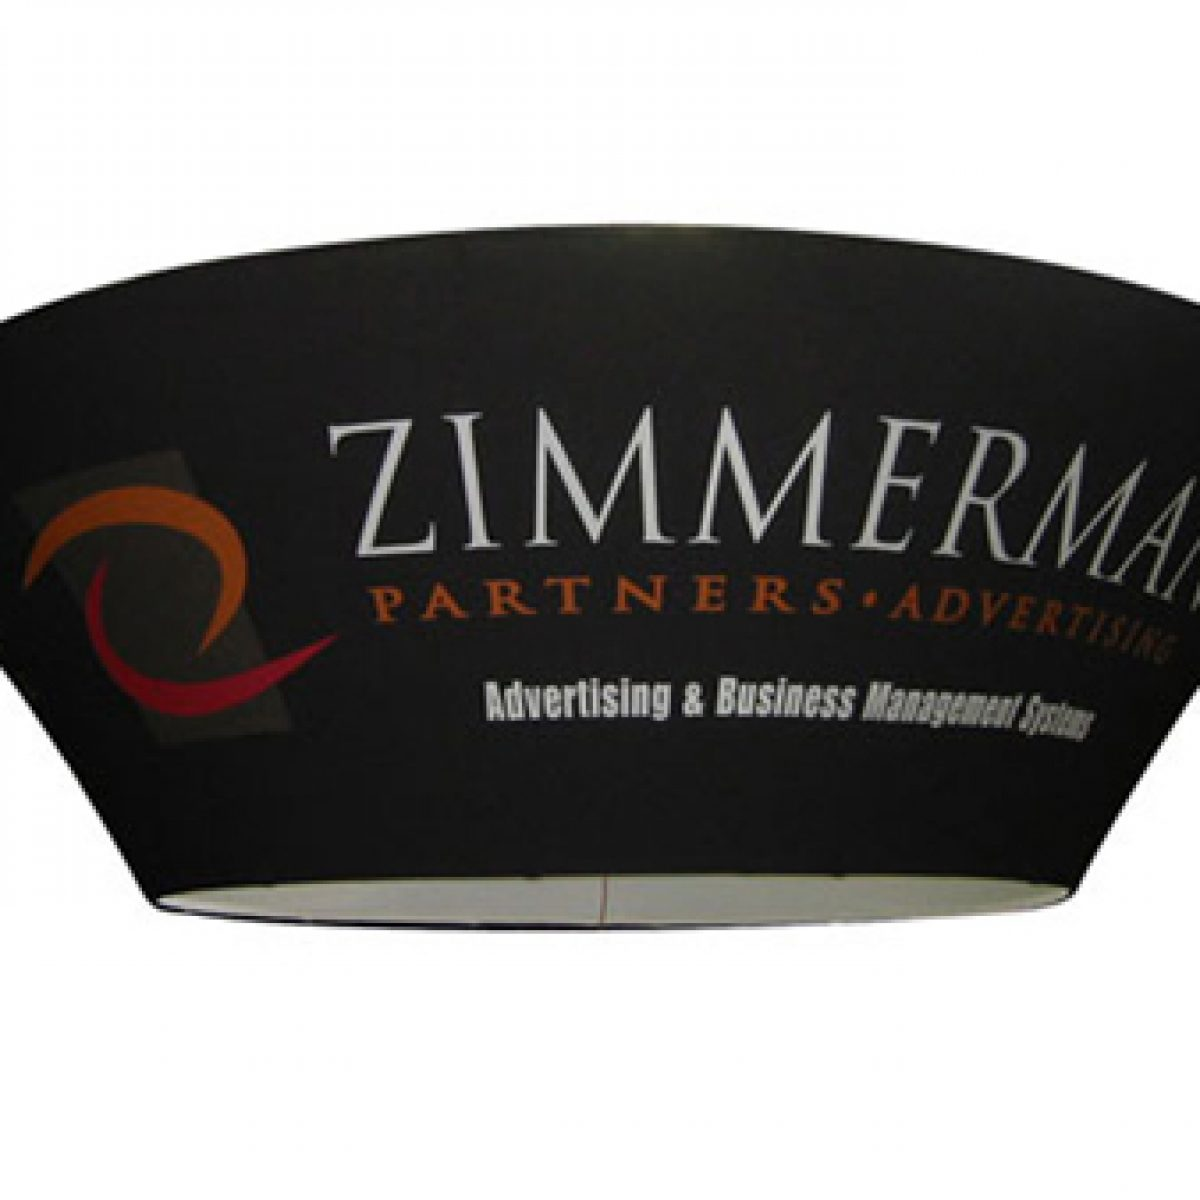 6) Tapered Circular Hanging Banner